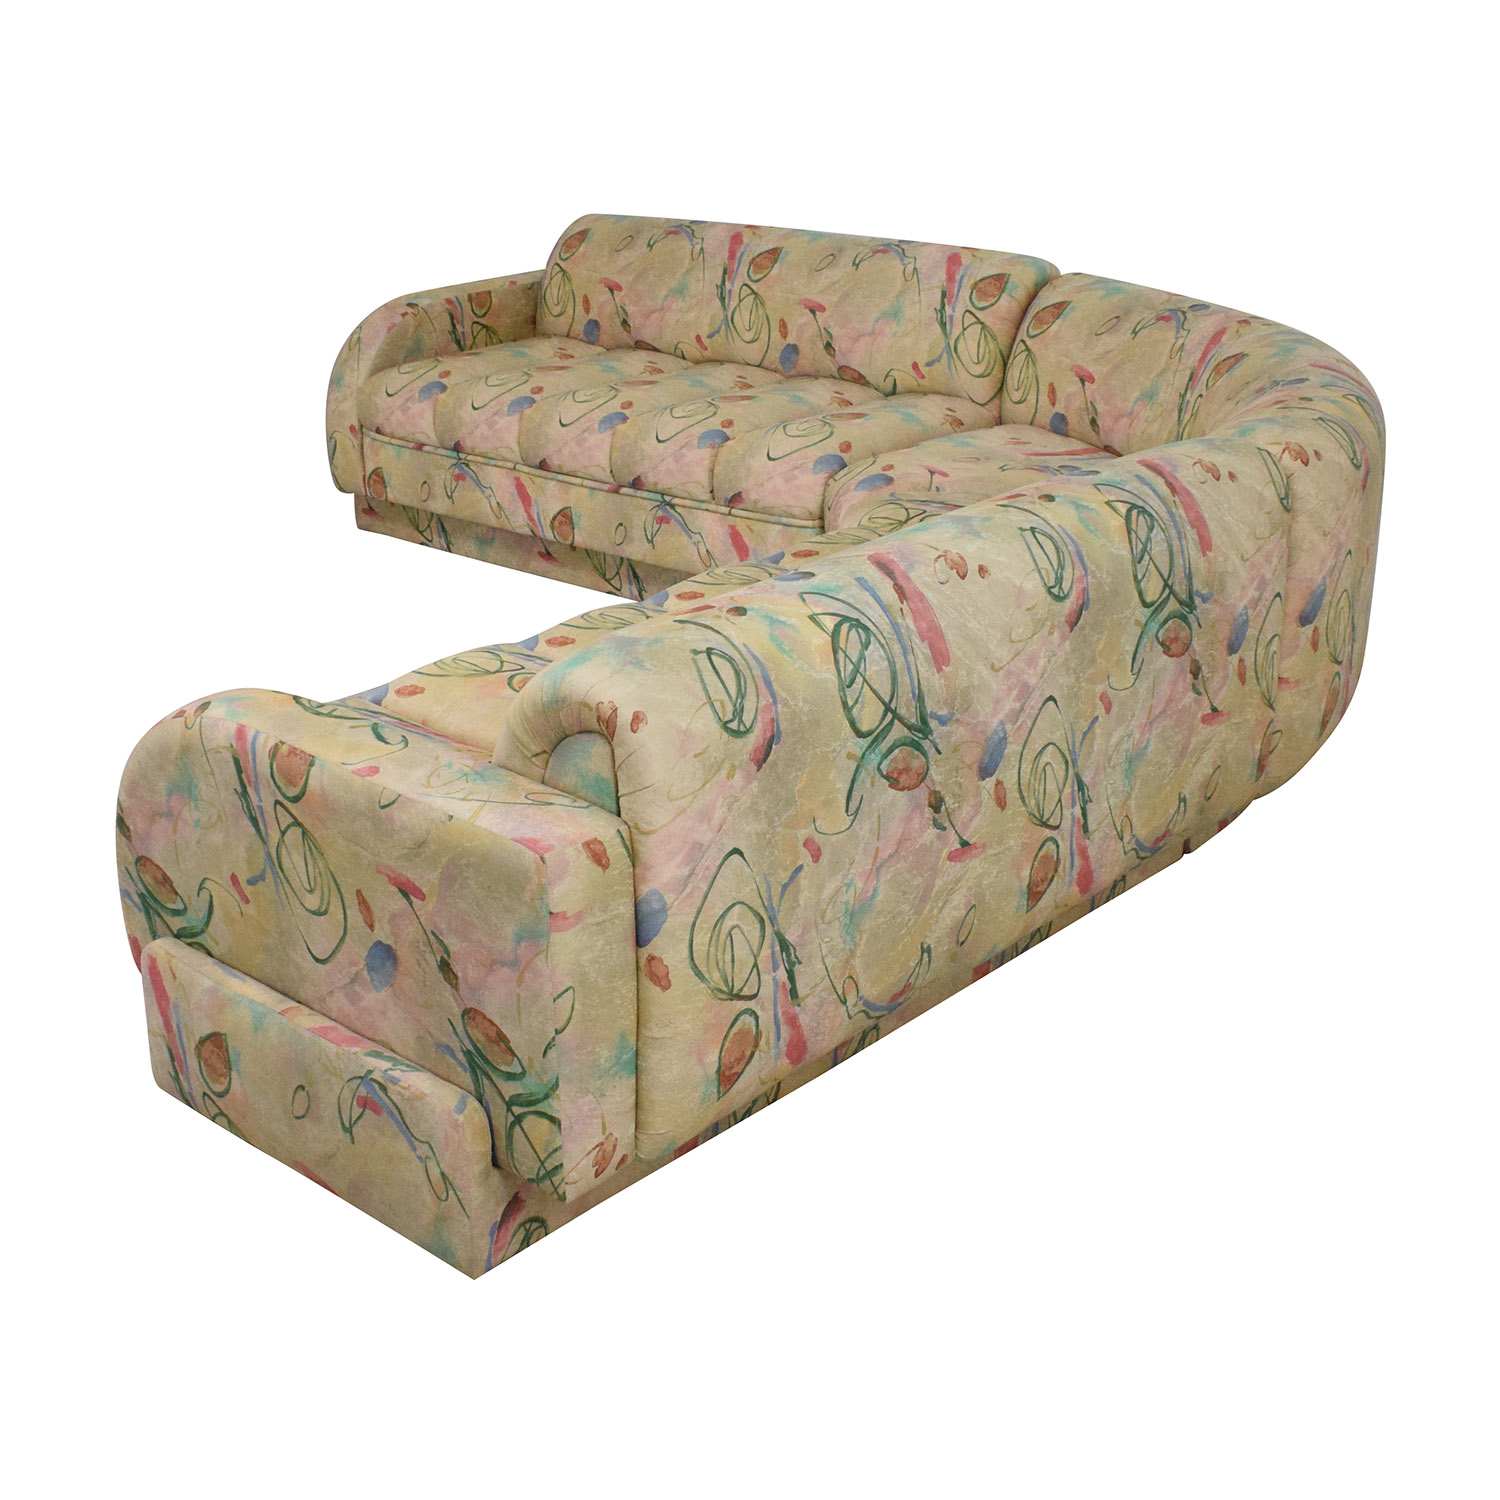 Directional Furniture Directional Furniture Custom Collection Floral Three Piece Sectional Sofa